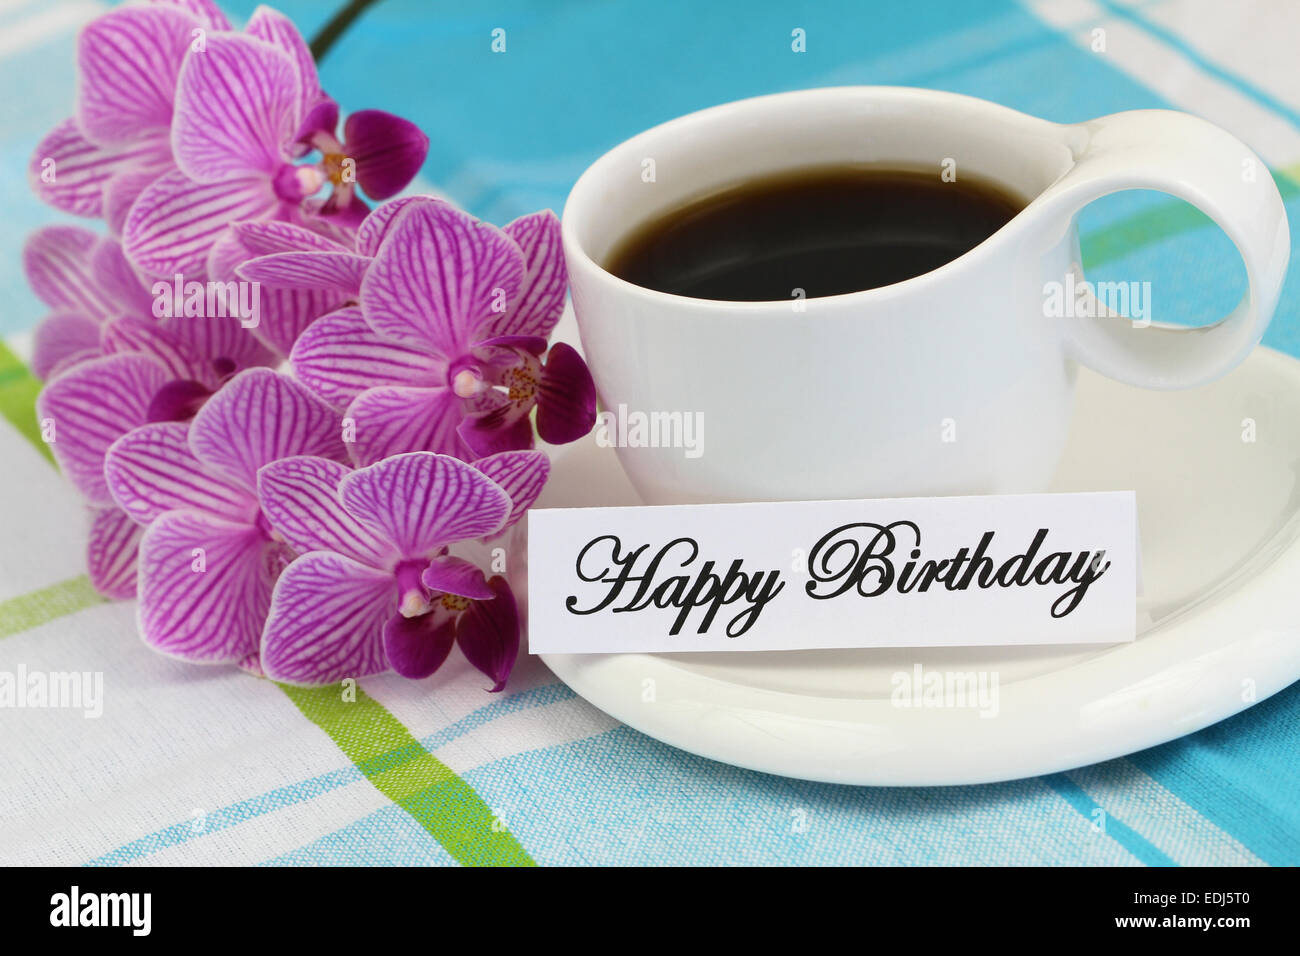 happy birthday card with coffee and pink orchid stock photo, Birthday card